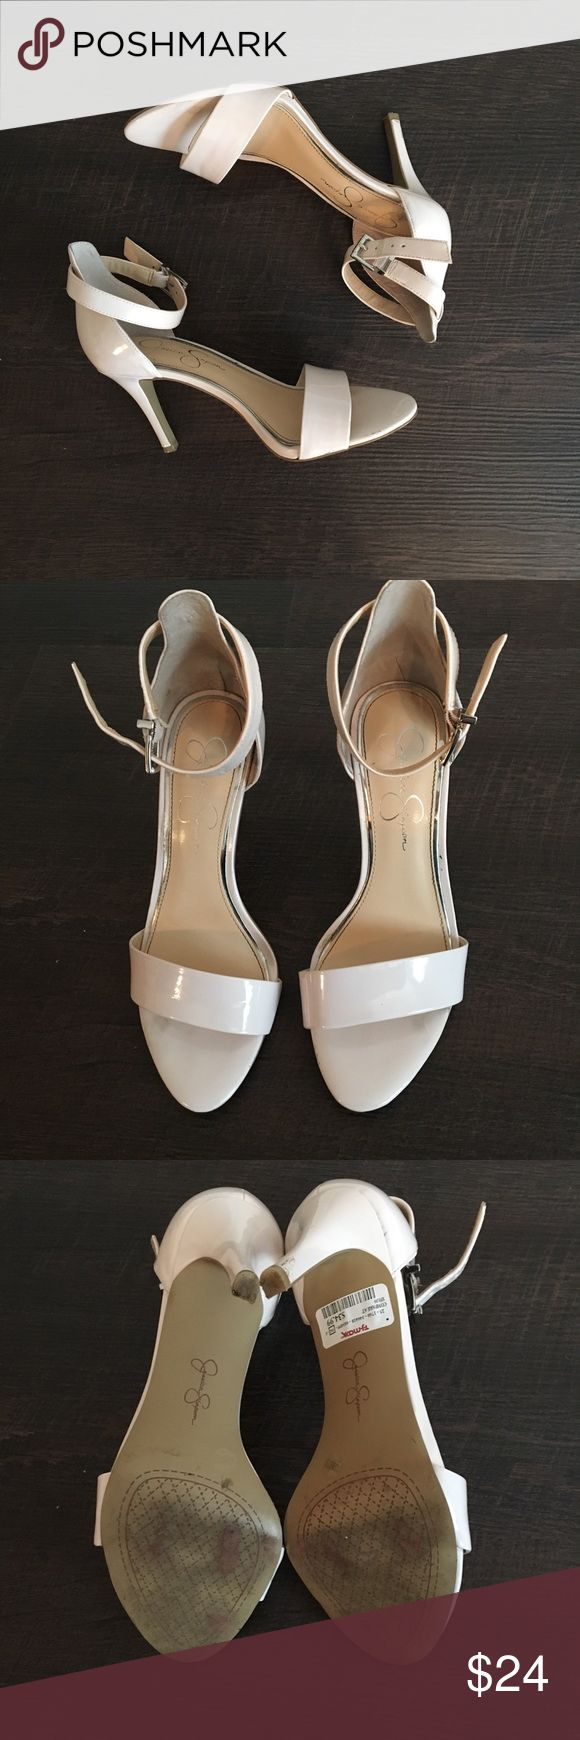 Nude/beige Jessica Simpson 2.5in heel sz:7.5 Good condition. Only worn 2x for weddings.    Would make a great bridesmaid shoe.    Jessica Simpson shoes are the best. Comfy and stylish.    Bought from Tj maxx.   Heel is 2.5 I'm. Easy to walk in. Jessica Simpson Shoes Heels